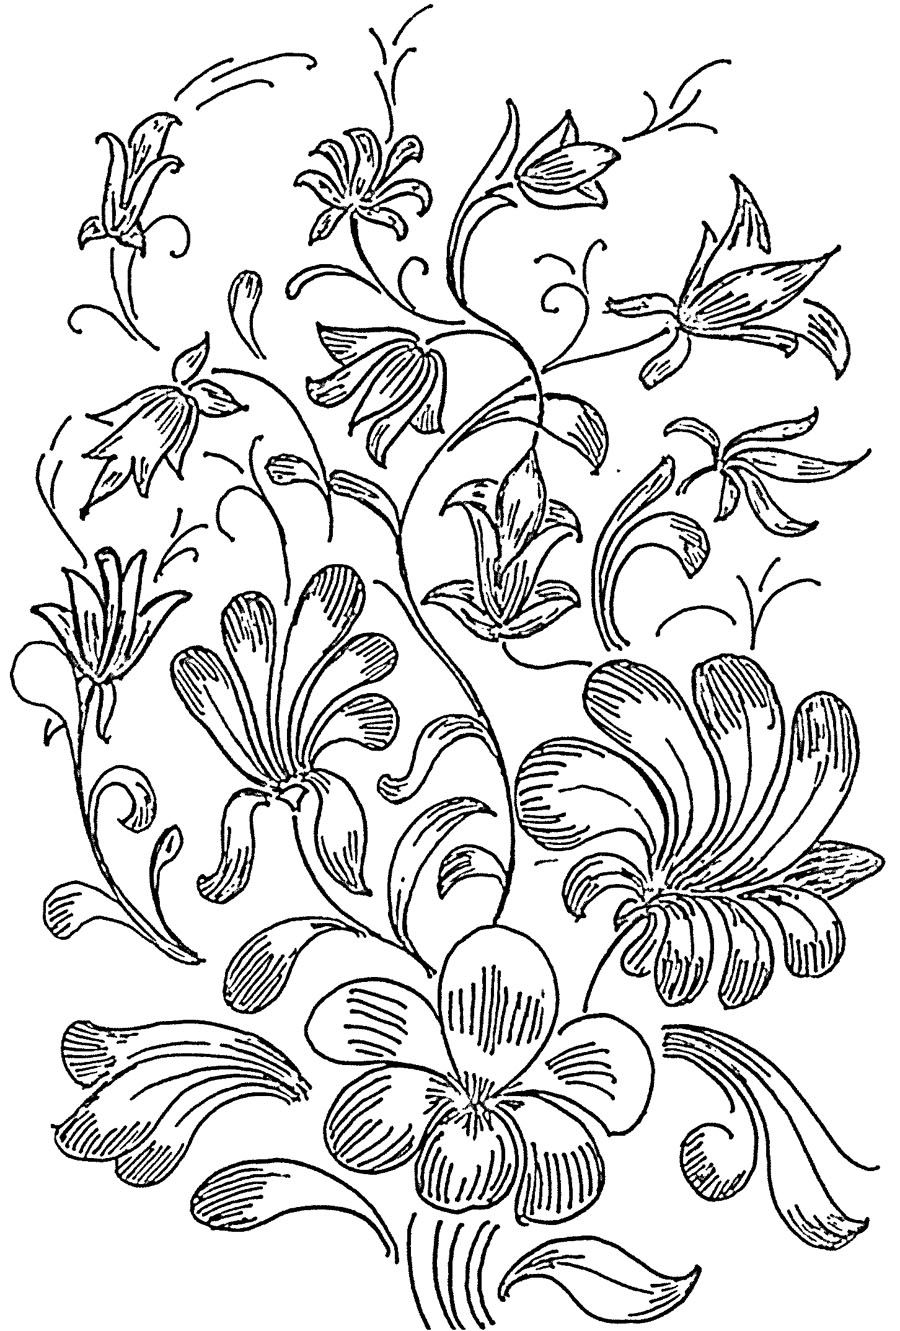 Glass Painting Patterns - flower design - tree structure with flowers